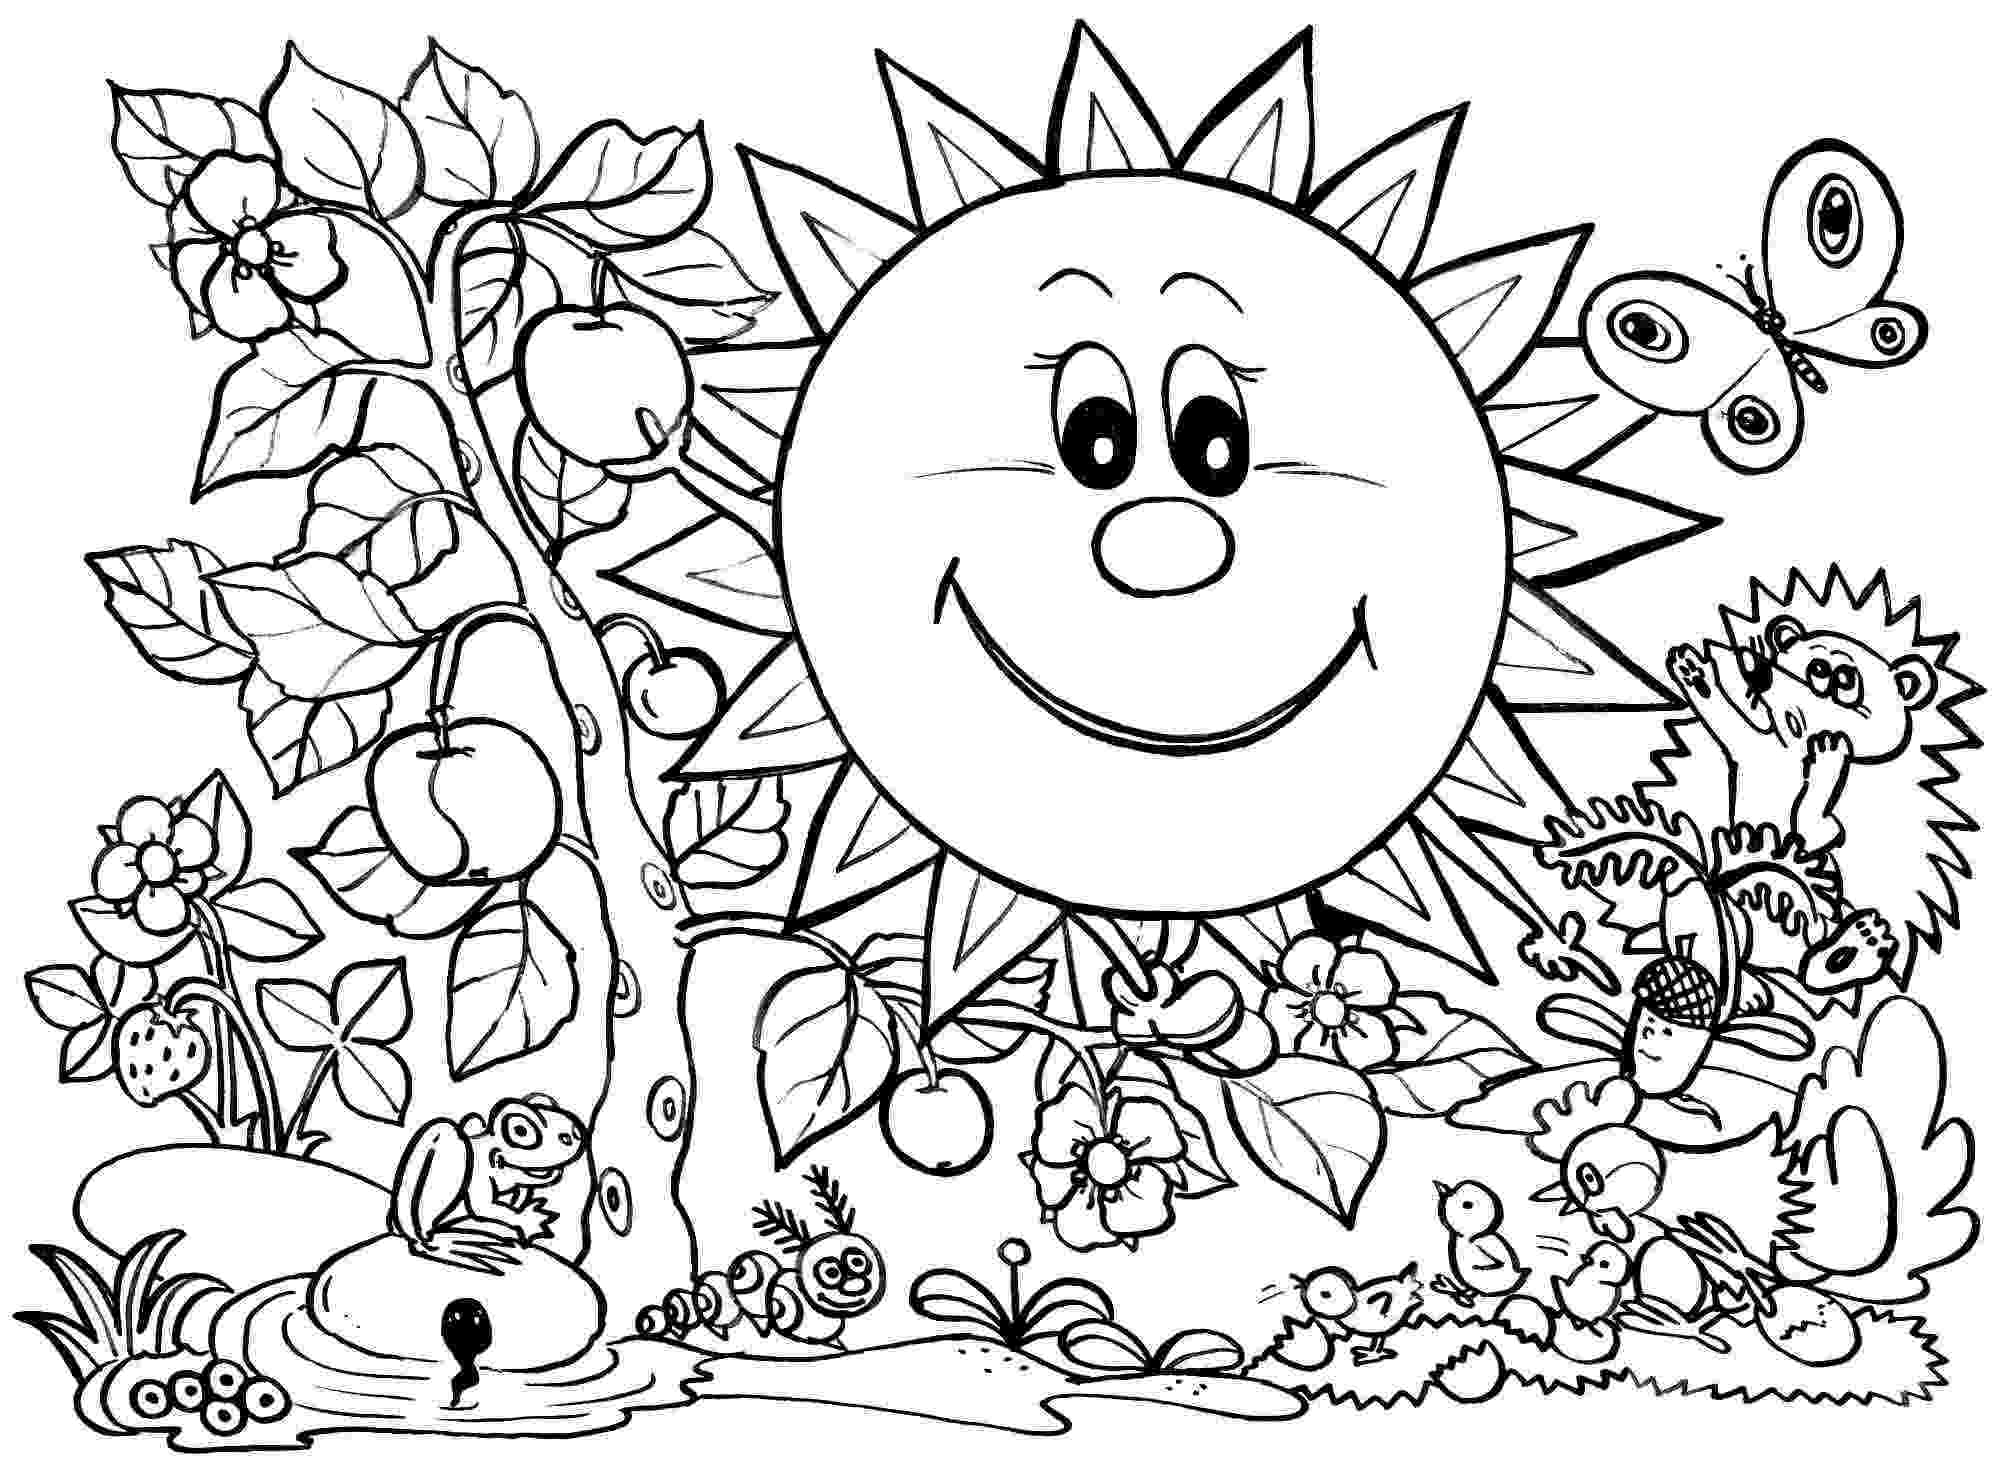 coloring pages for spring spring coloring contest by yampuff on deviantart spring for pages coloring